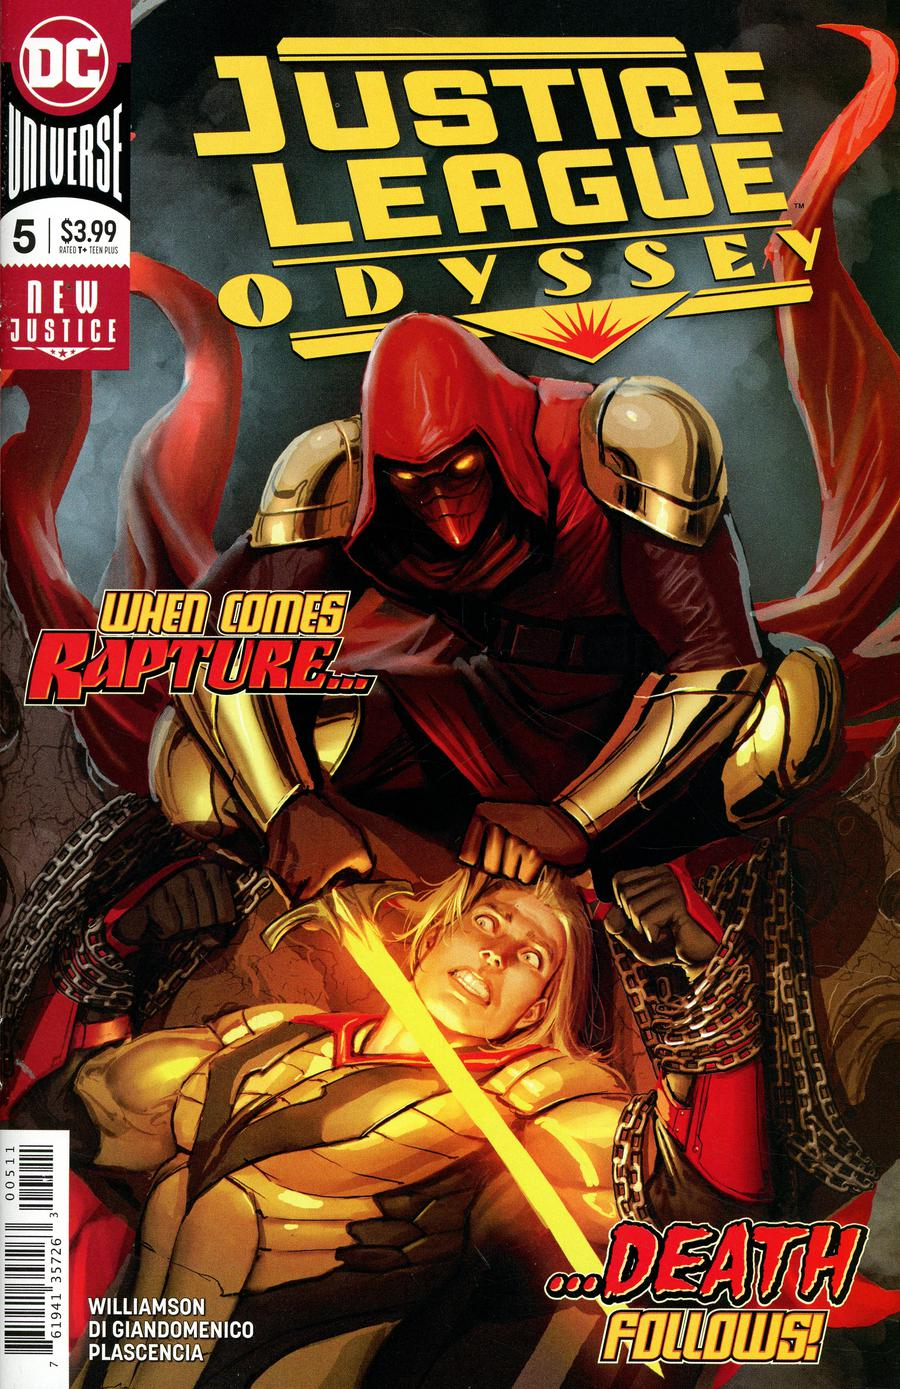 Justice League Odyssey #5 Cover A Regular Stjepan Sejic Cover